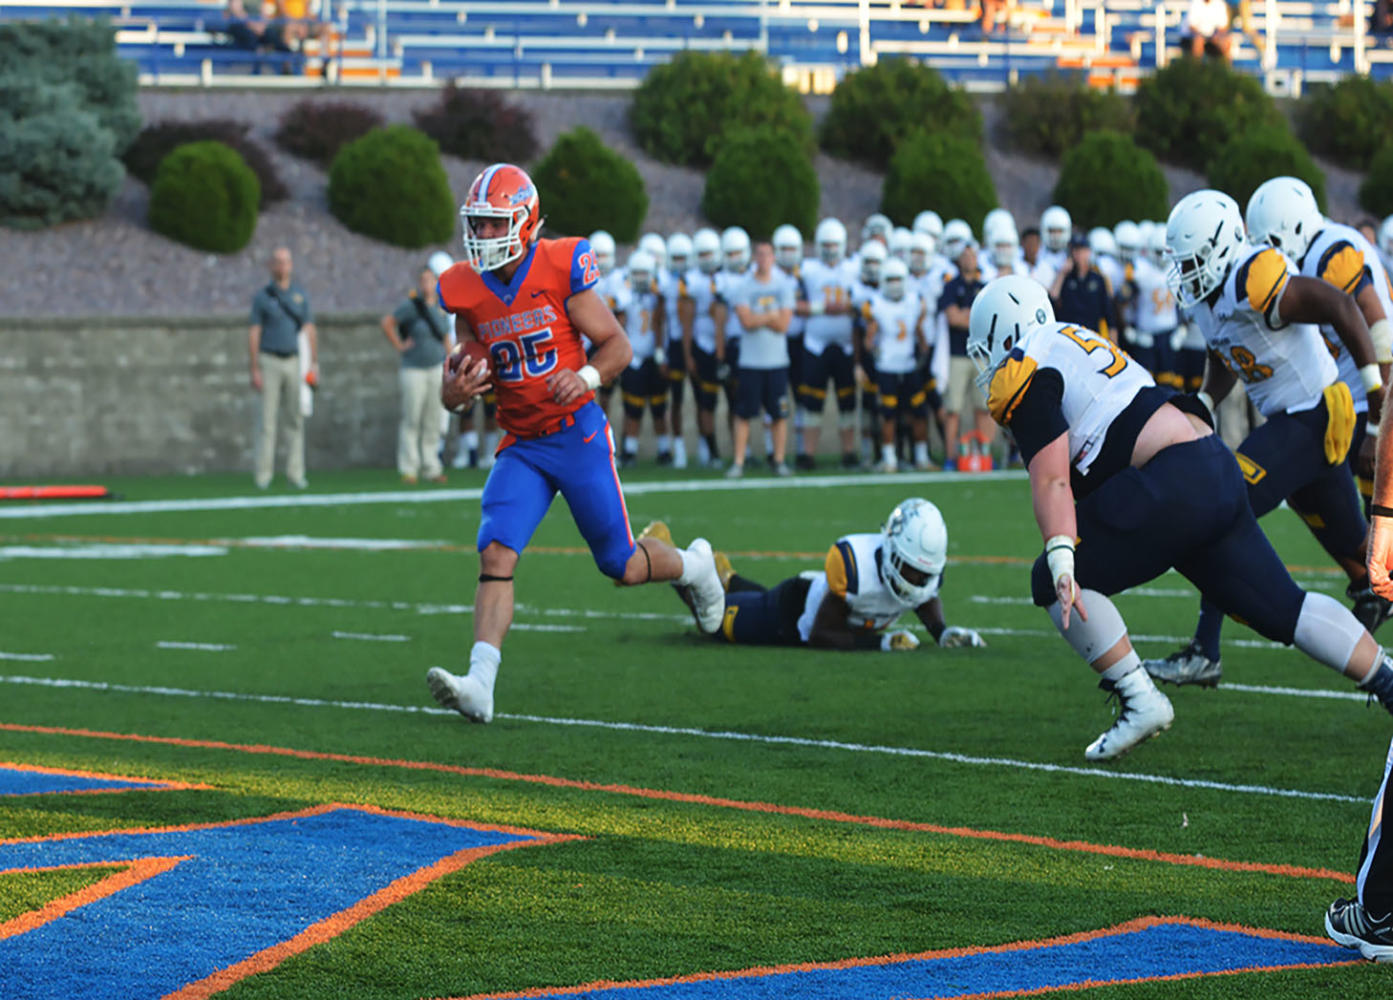 Junior running back Sean Studer rushes for a touch down against the Lakeland Univeristy Muskie defense.